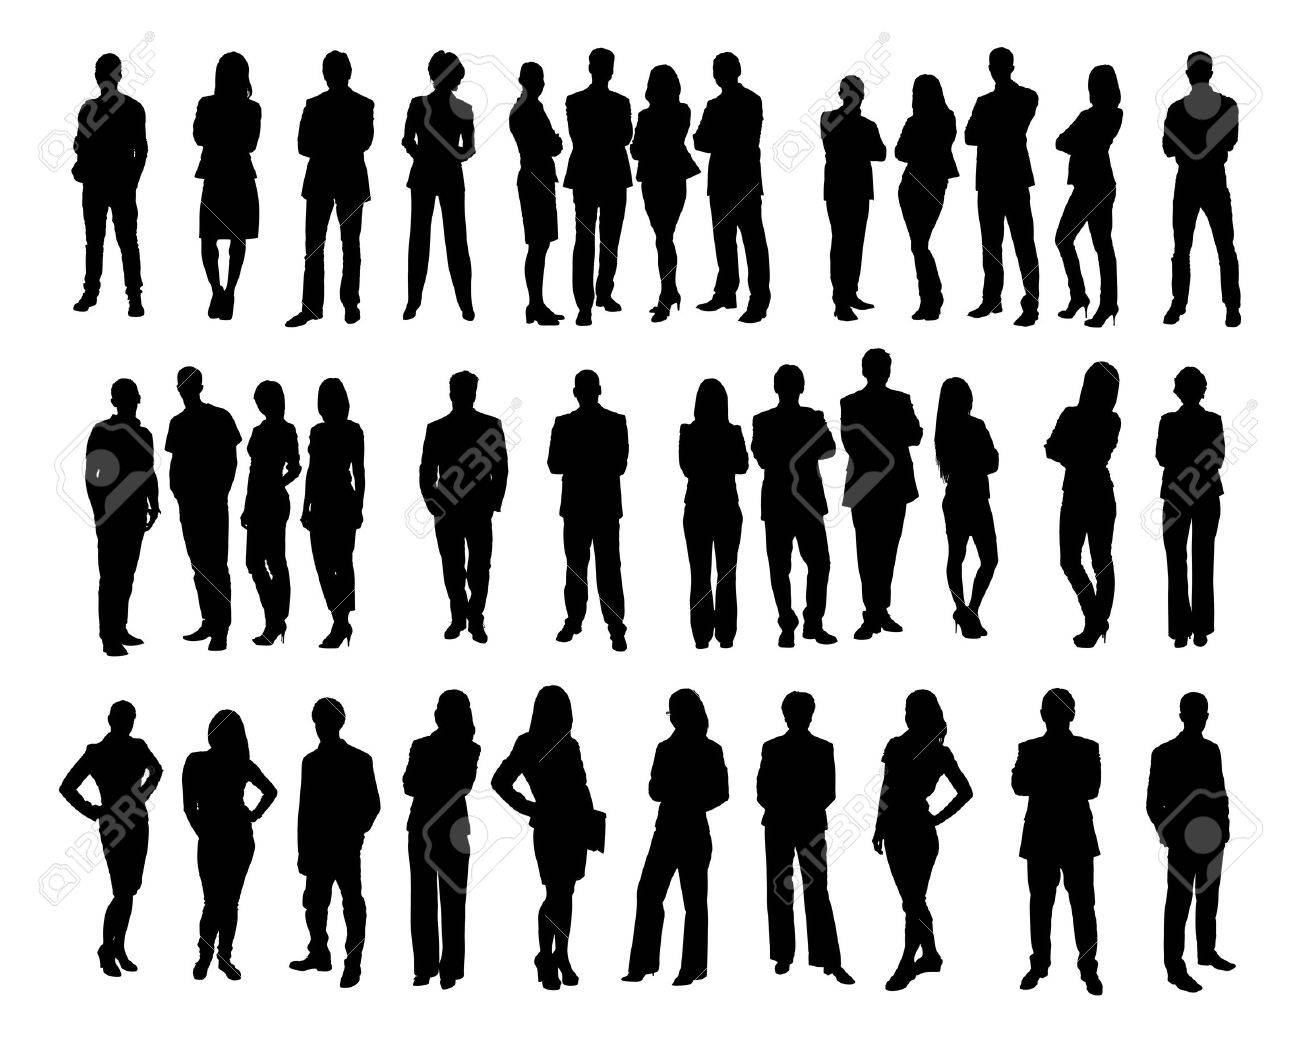 Brand new Collage Of Silhouette Business People Standing Against White  NF31